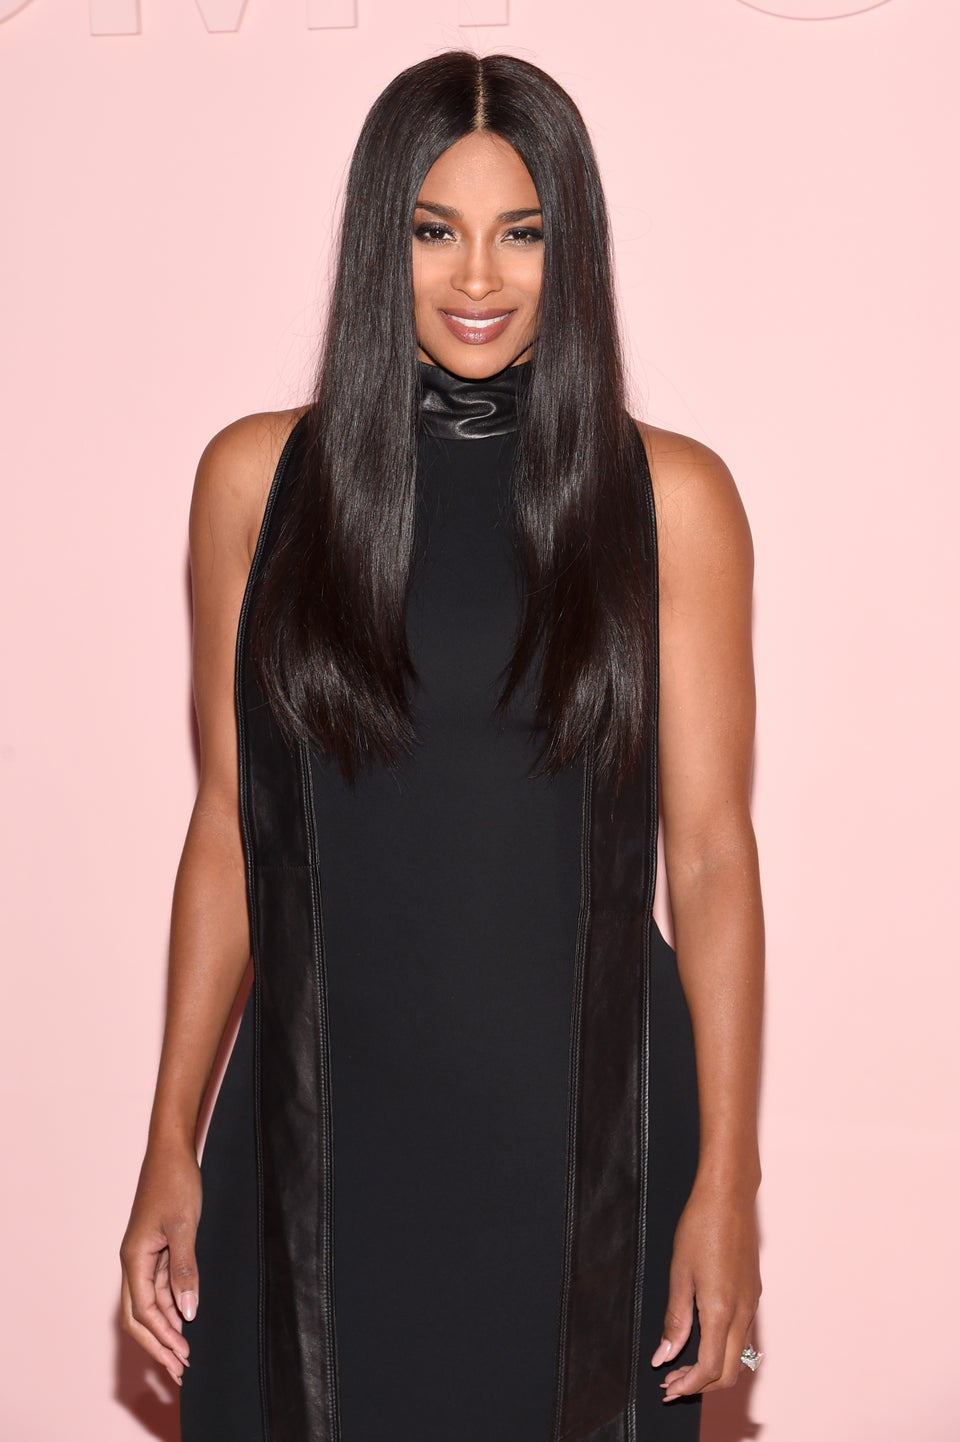 Missy Elliott Just Revealed That Ciara Has New Music On The Way